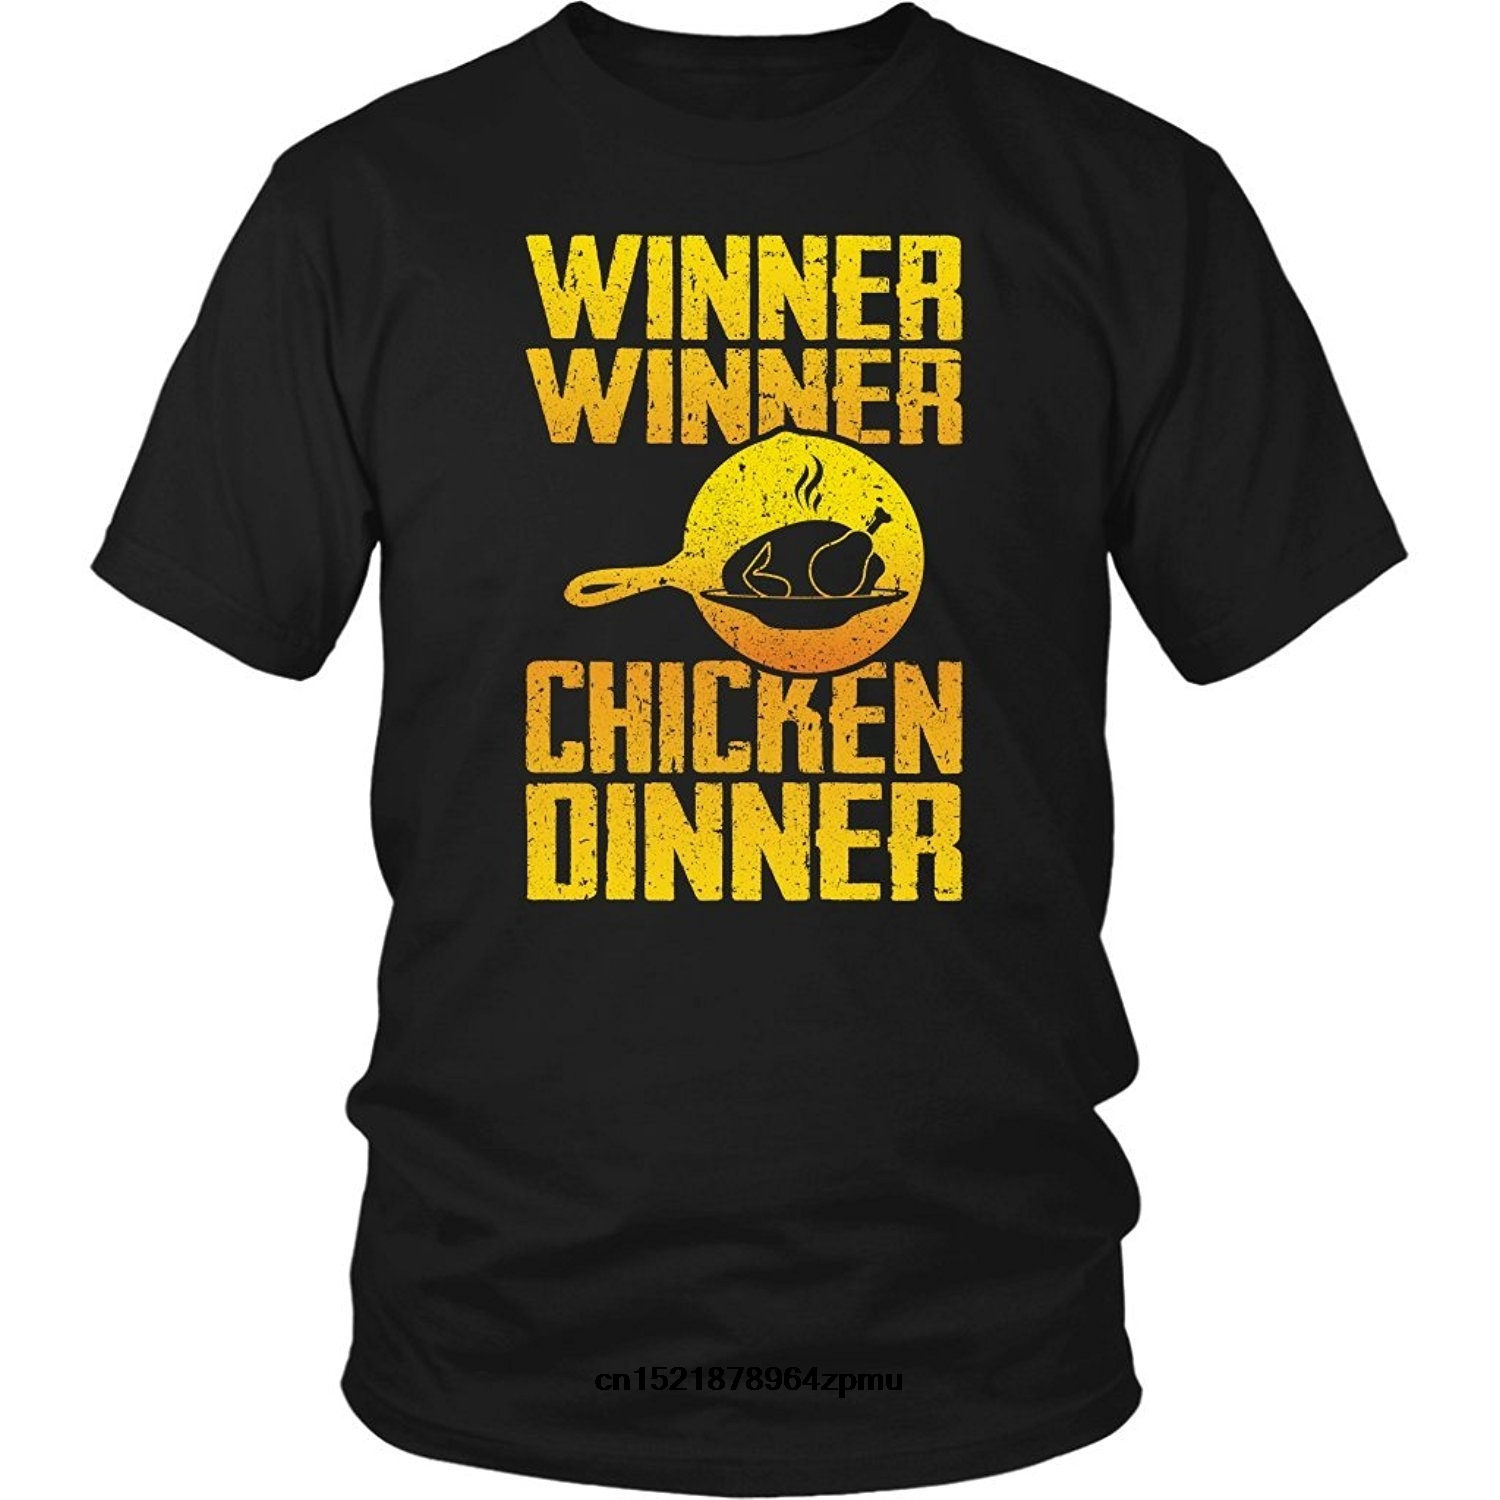 31c3dc51c Men t shirt ASSIN Battle Royale Gamer Clothing Winner Winner Chicken Dinner  Unisex t-shirt